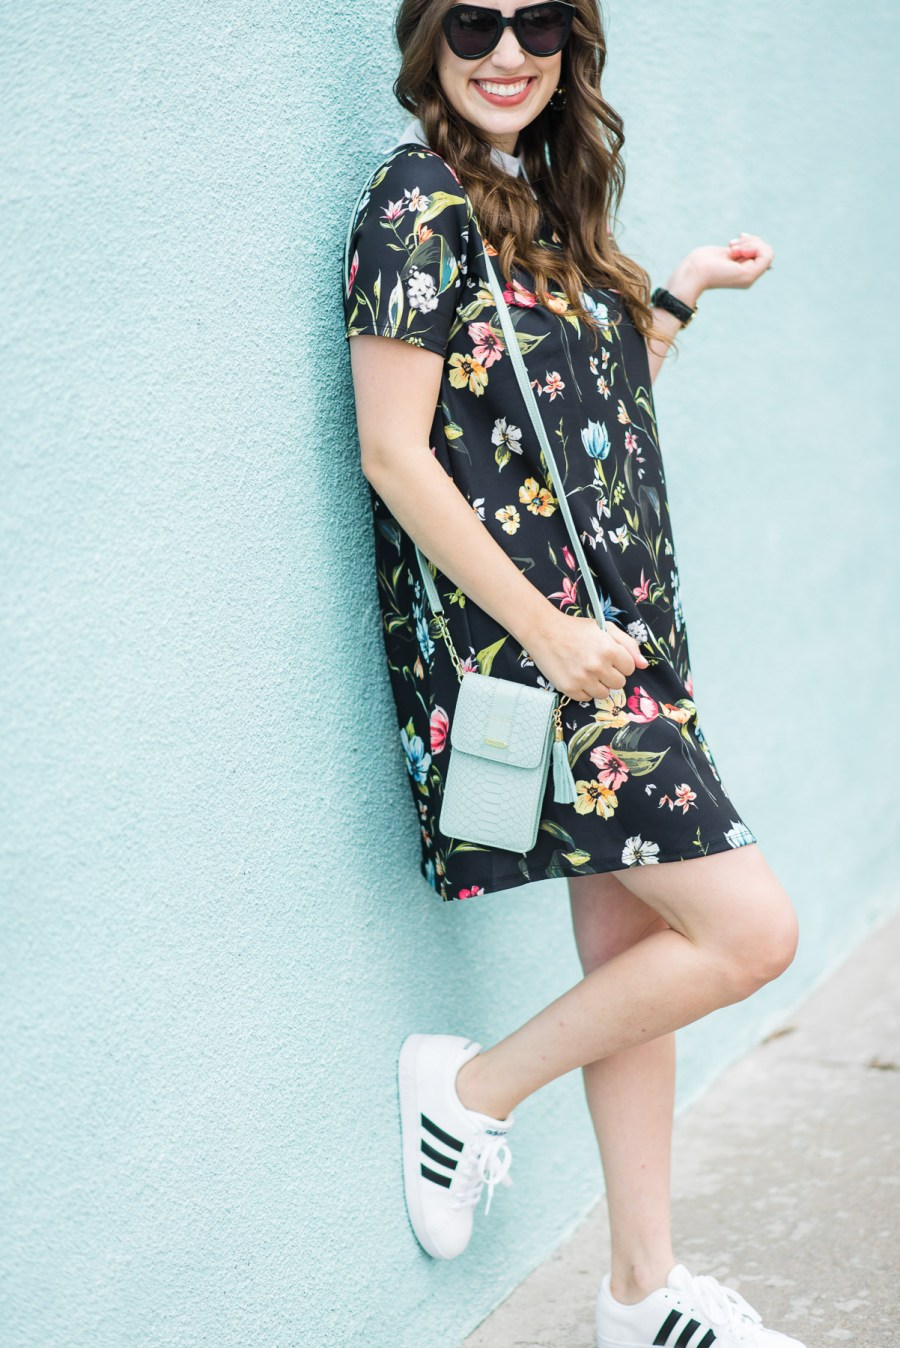 Floral_Shirt_Dress_Adidas_Sneakers-6